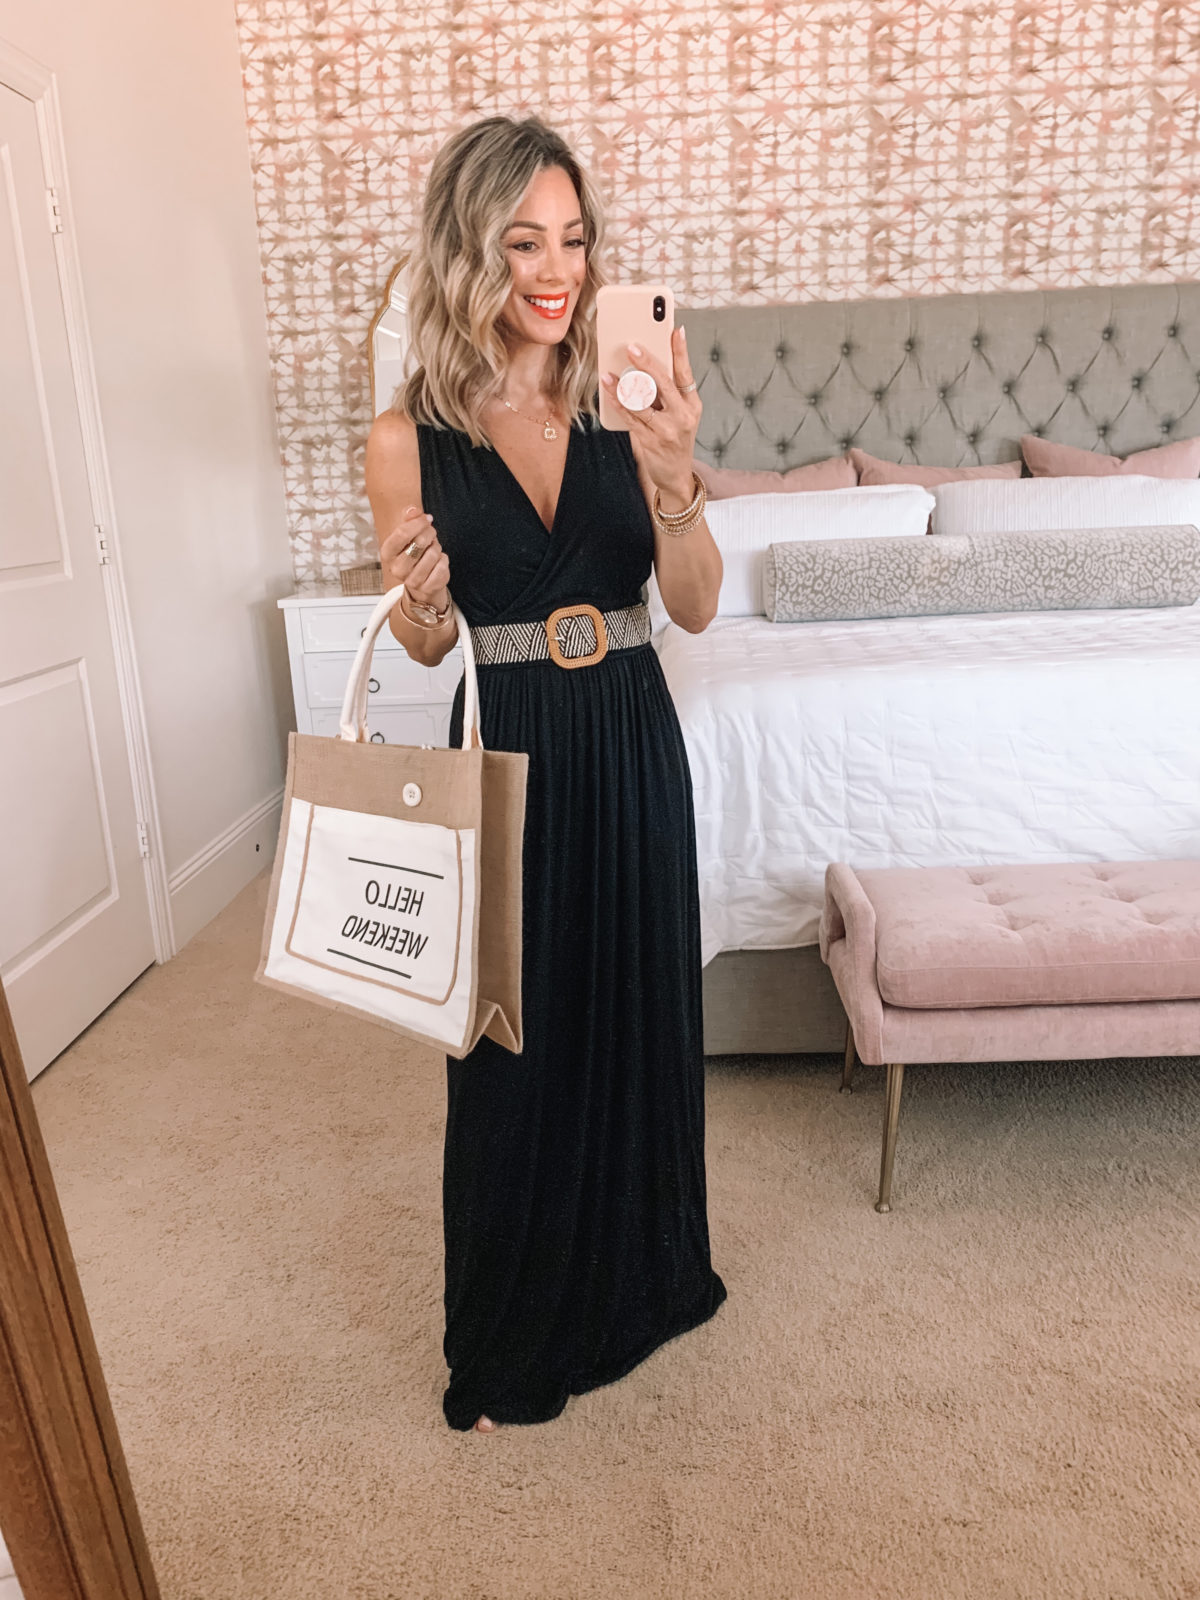 Amazon Fashion Faves, Black Maxi Dress with woven belt and Weekend Tote Bag